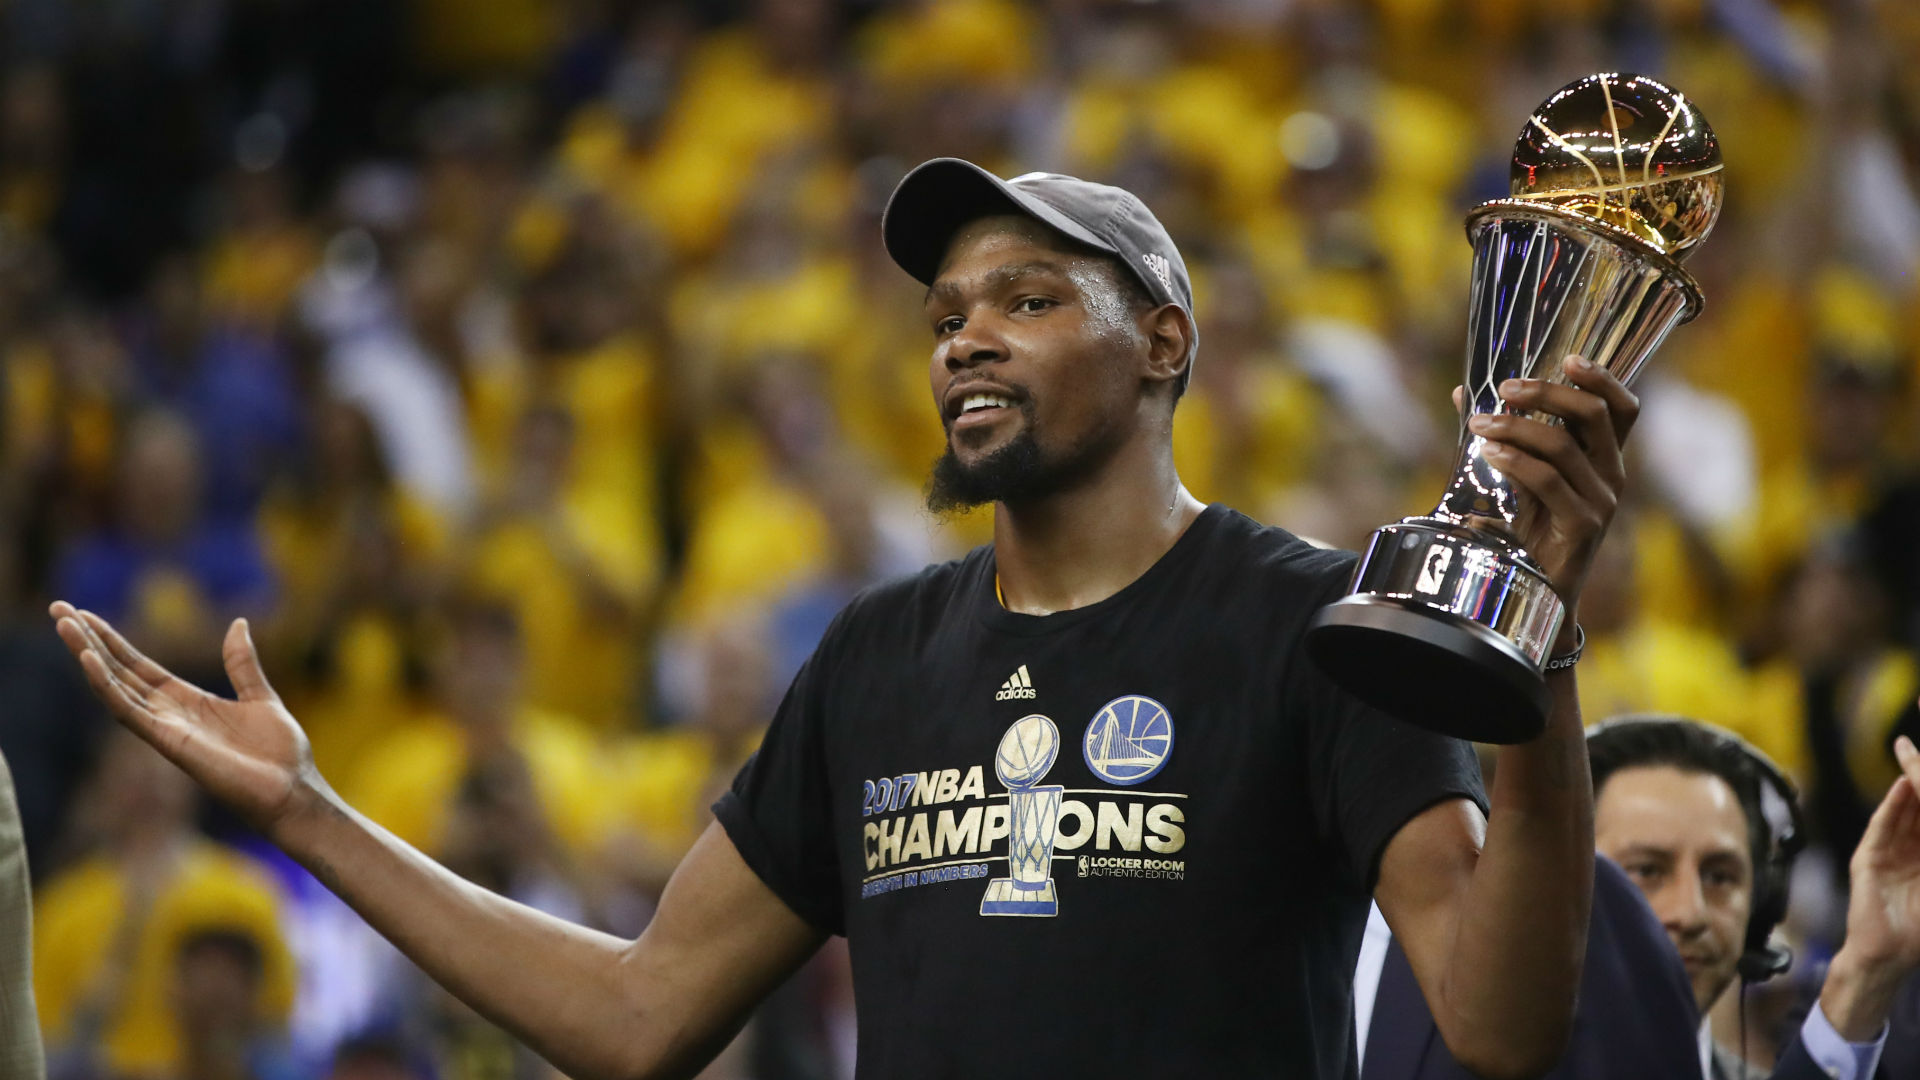 Nike Airs Kevin Durant 'Debate This' Ad After NBA Finals